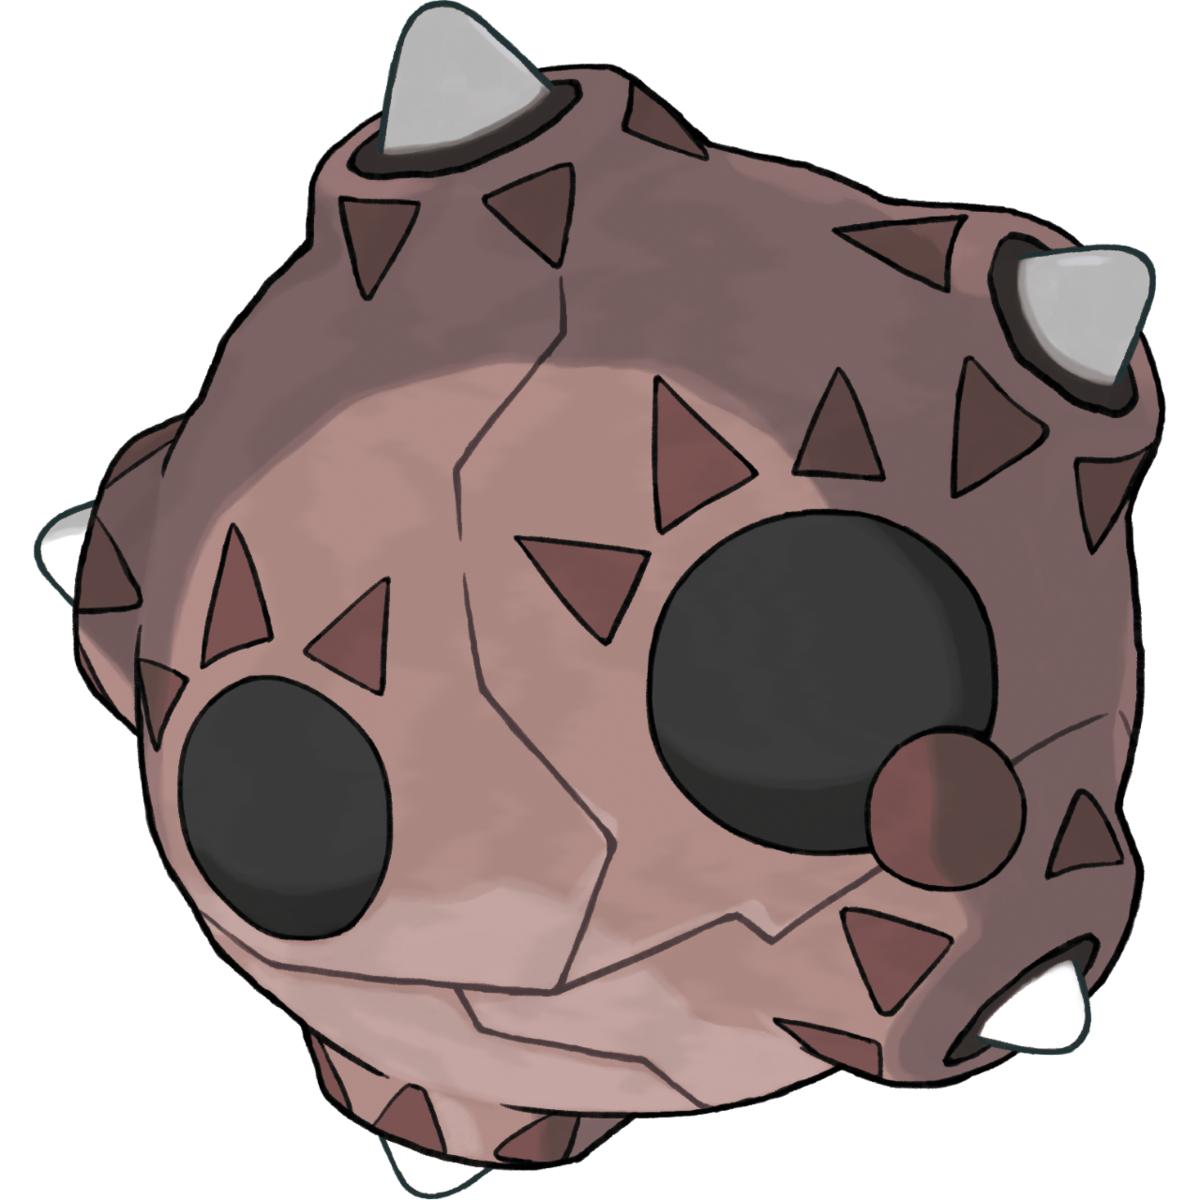 Clipart stars meteor. Minior pok mon bulbapedia